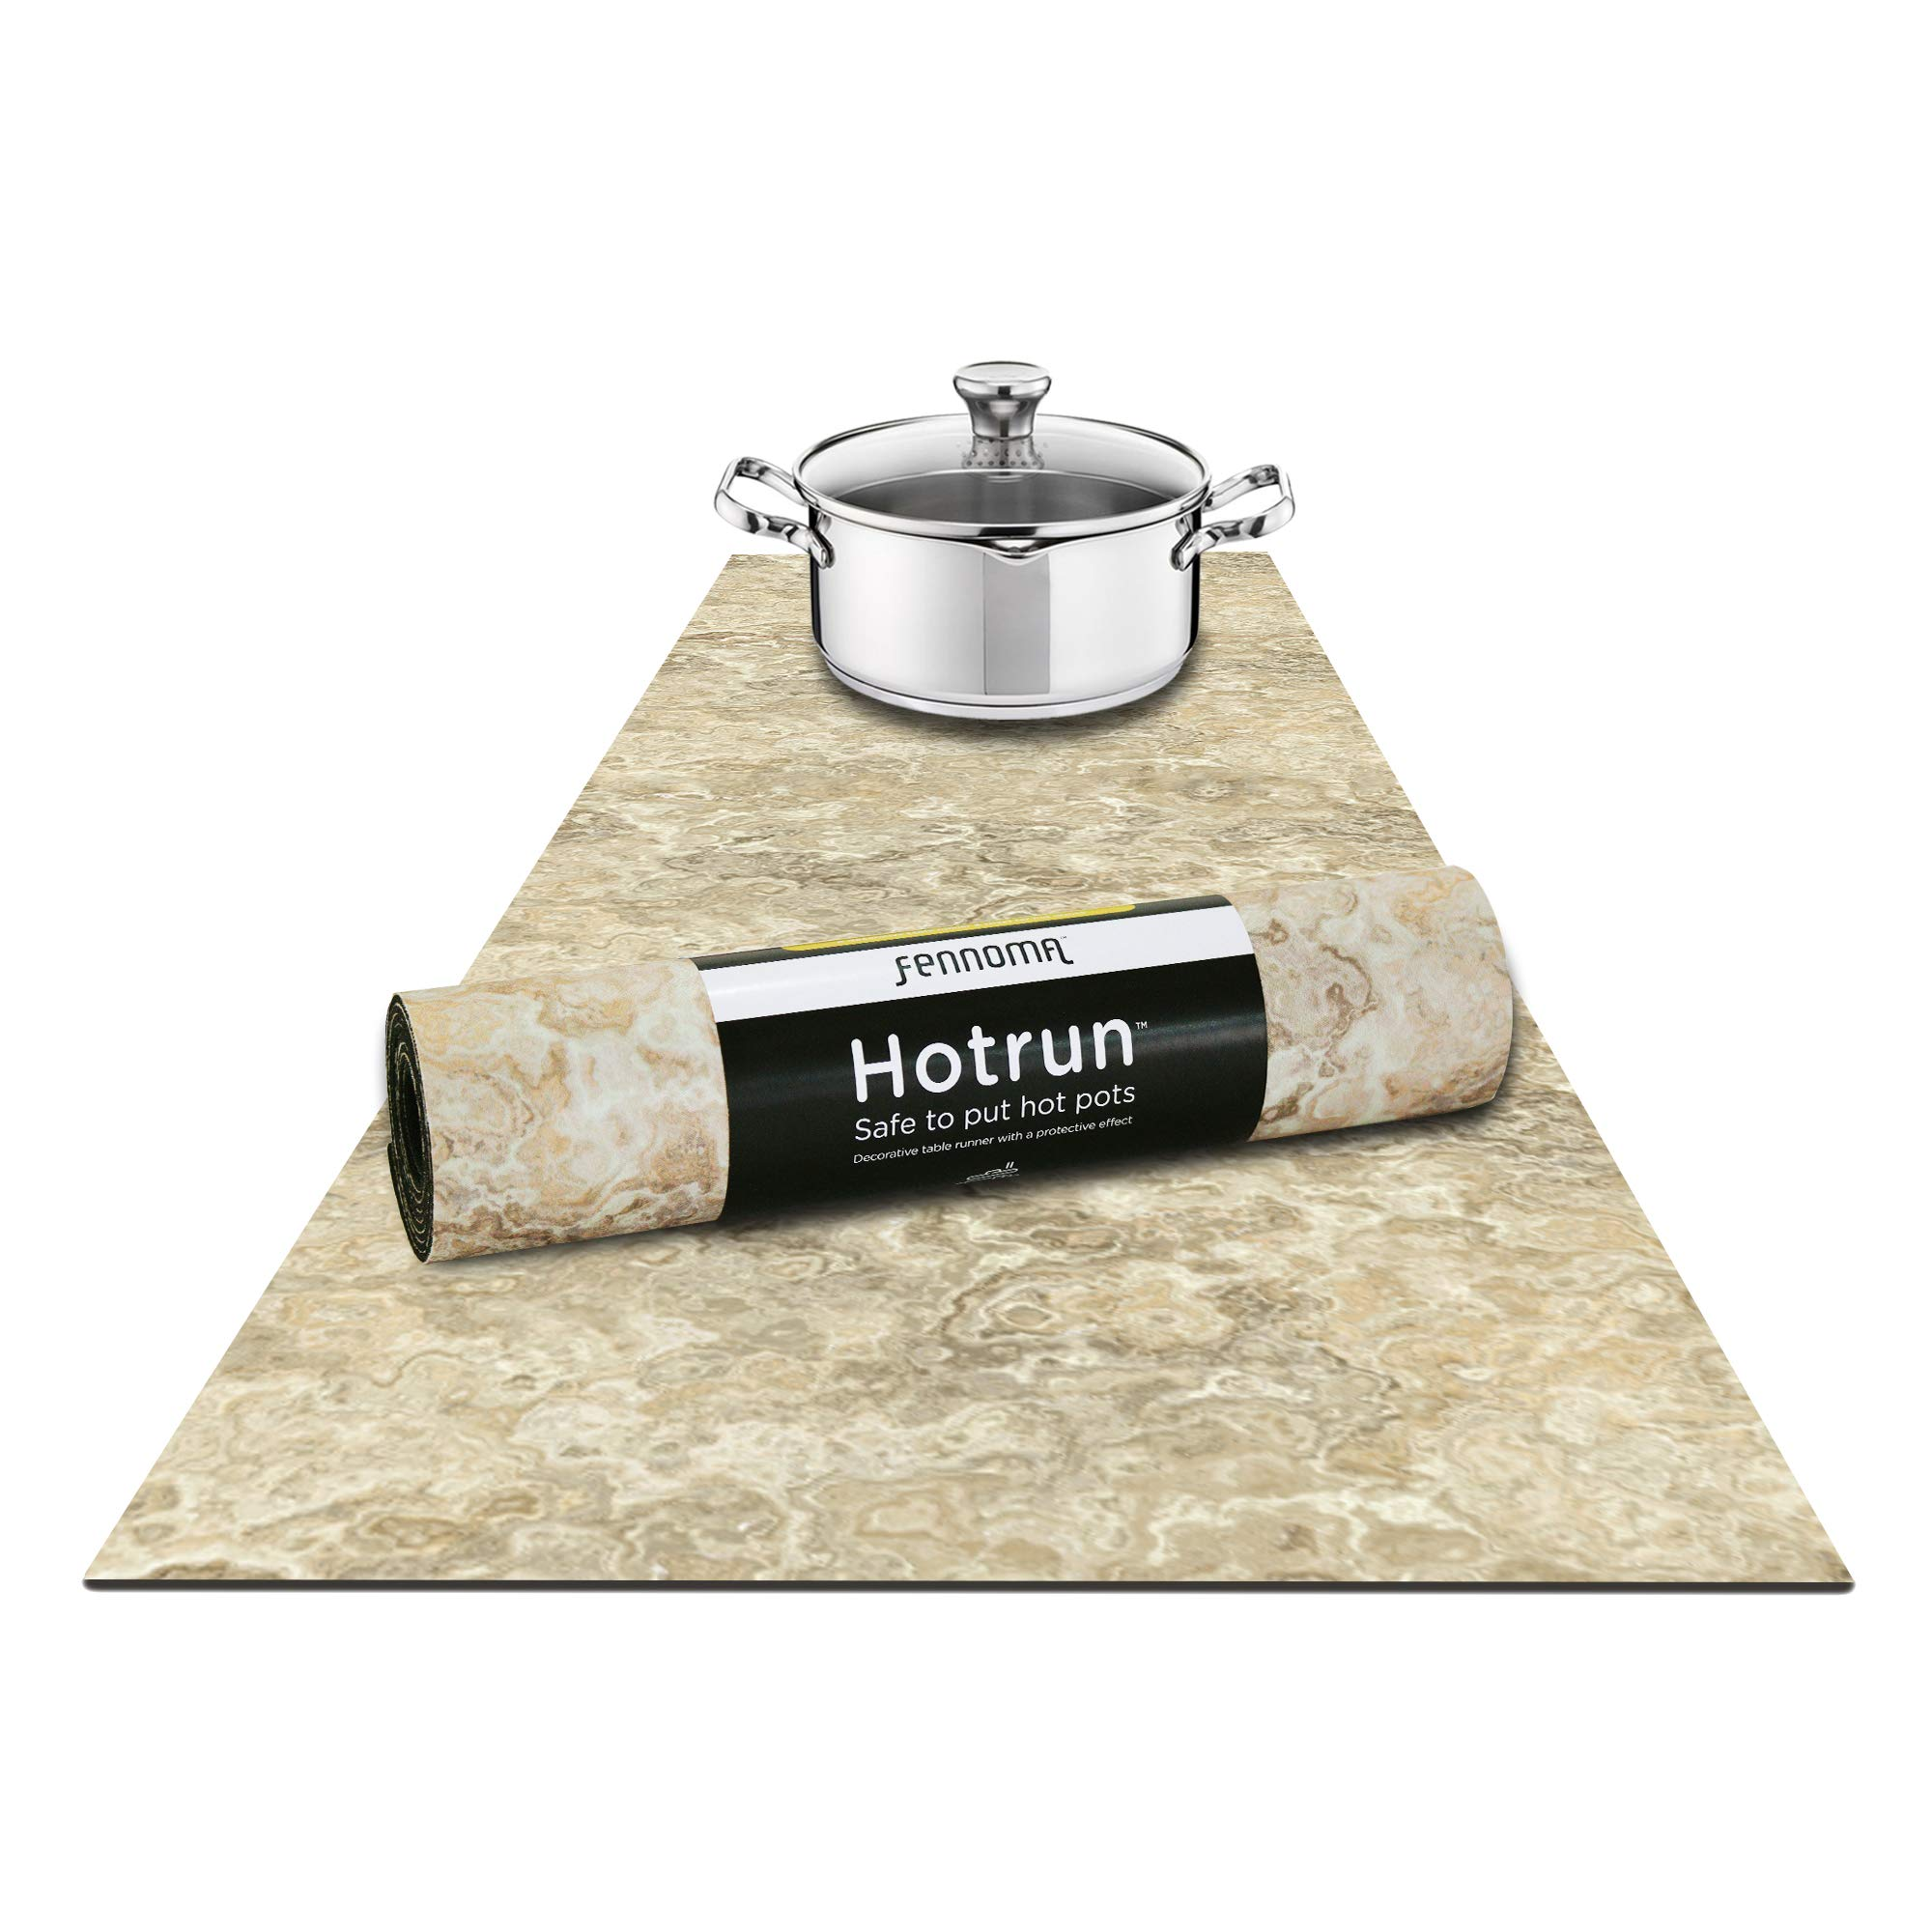 Fennoma Hotrun 2 in 1 Trivet and Decorative Table Runner Handles Heat Up to 356F, Anti Slip, Waterproof, and Convenient for Hot Dishes and Pots (Natural Marble) by Fennoma